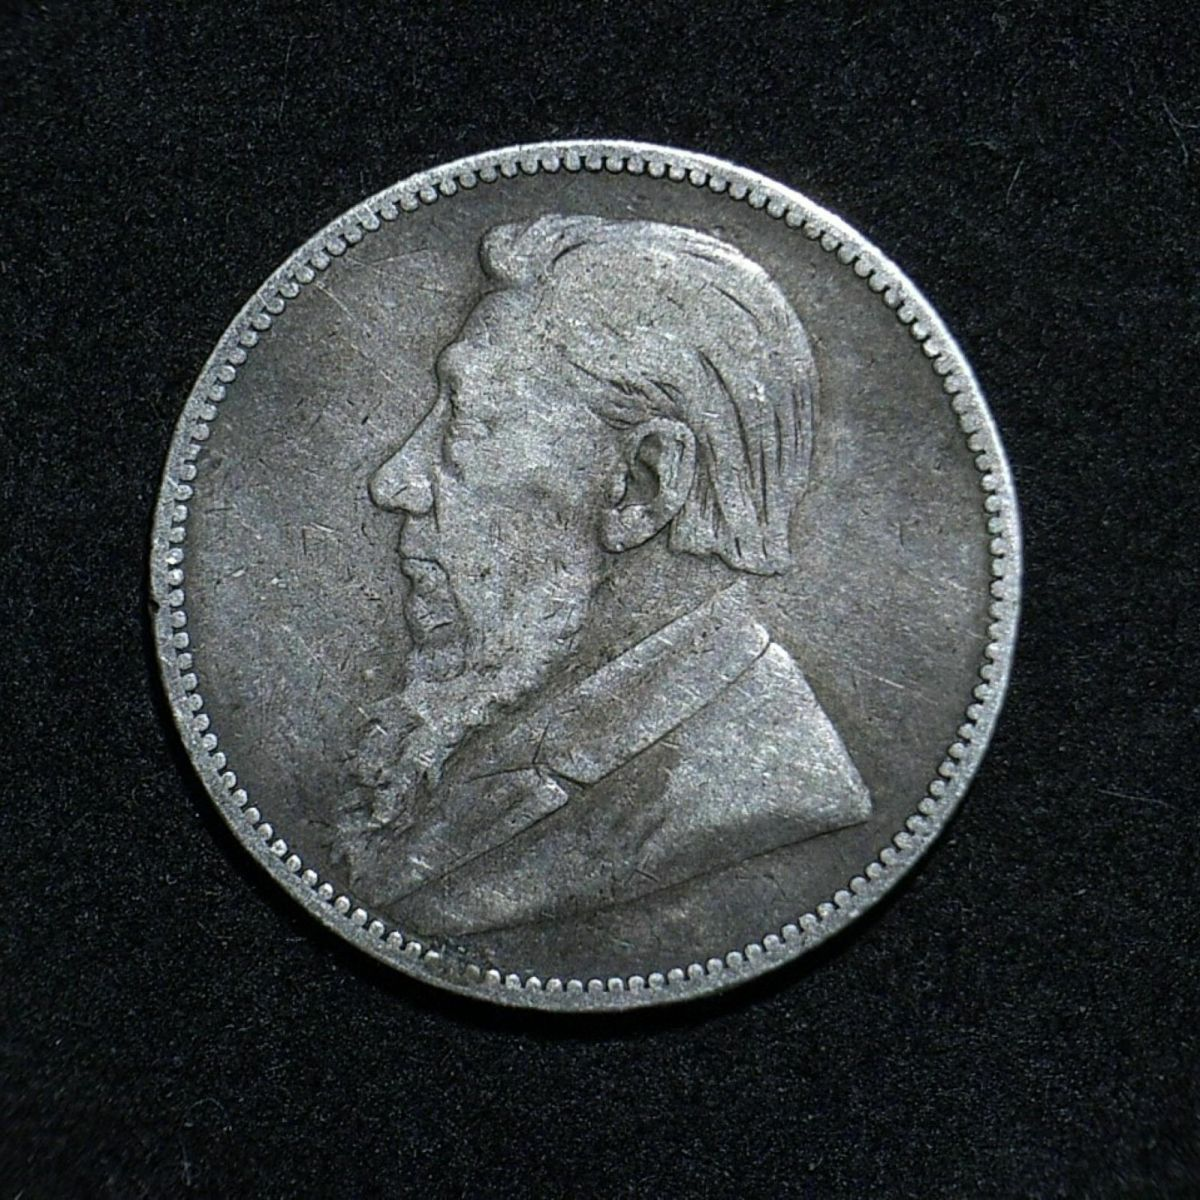 Sth African 1894 shilling obverse close up showing the coin's detail